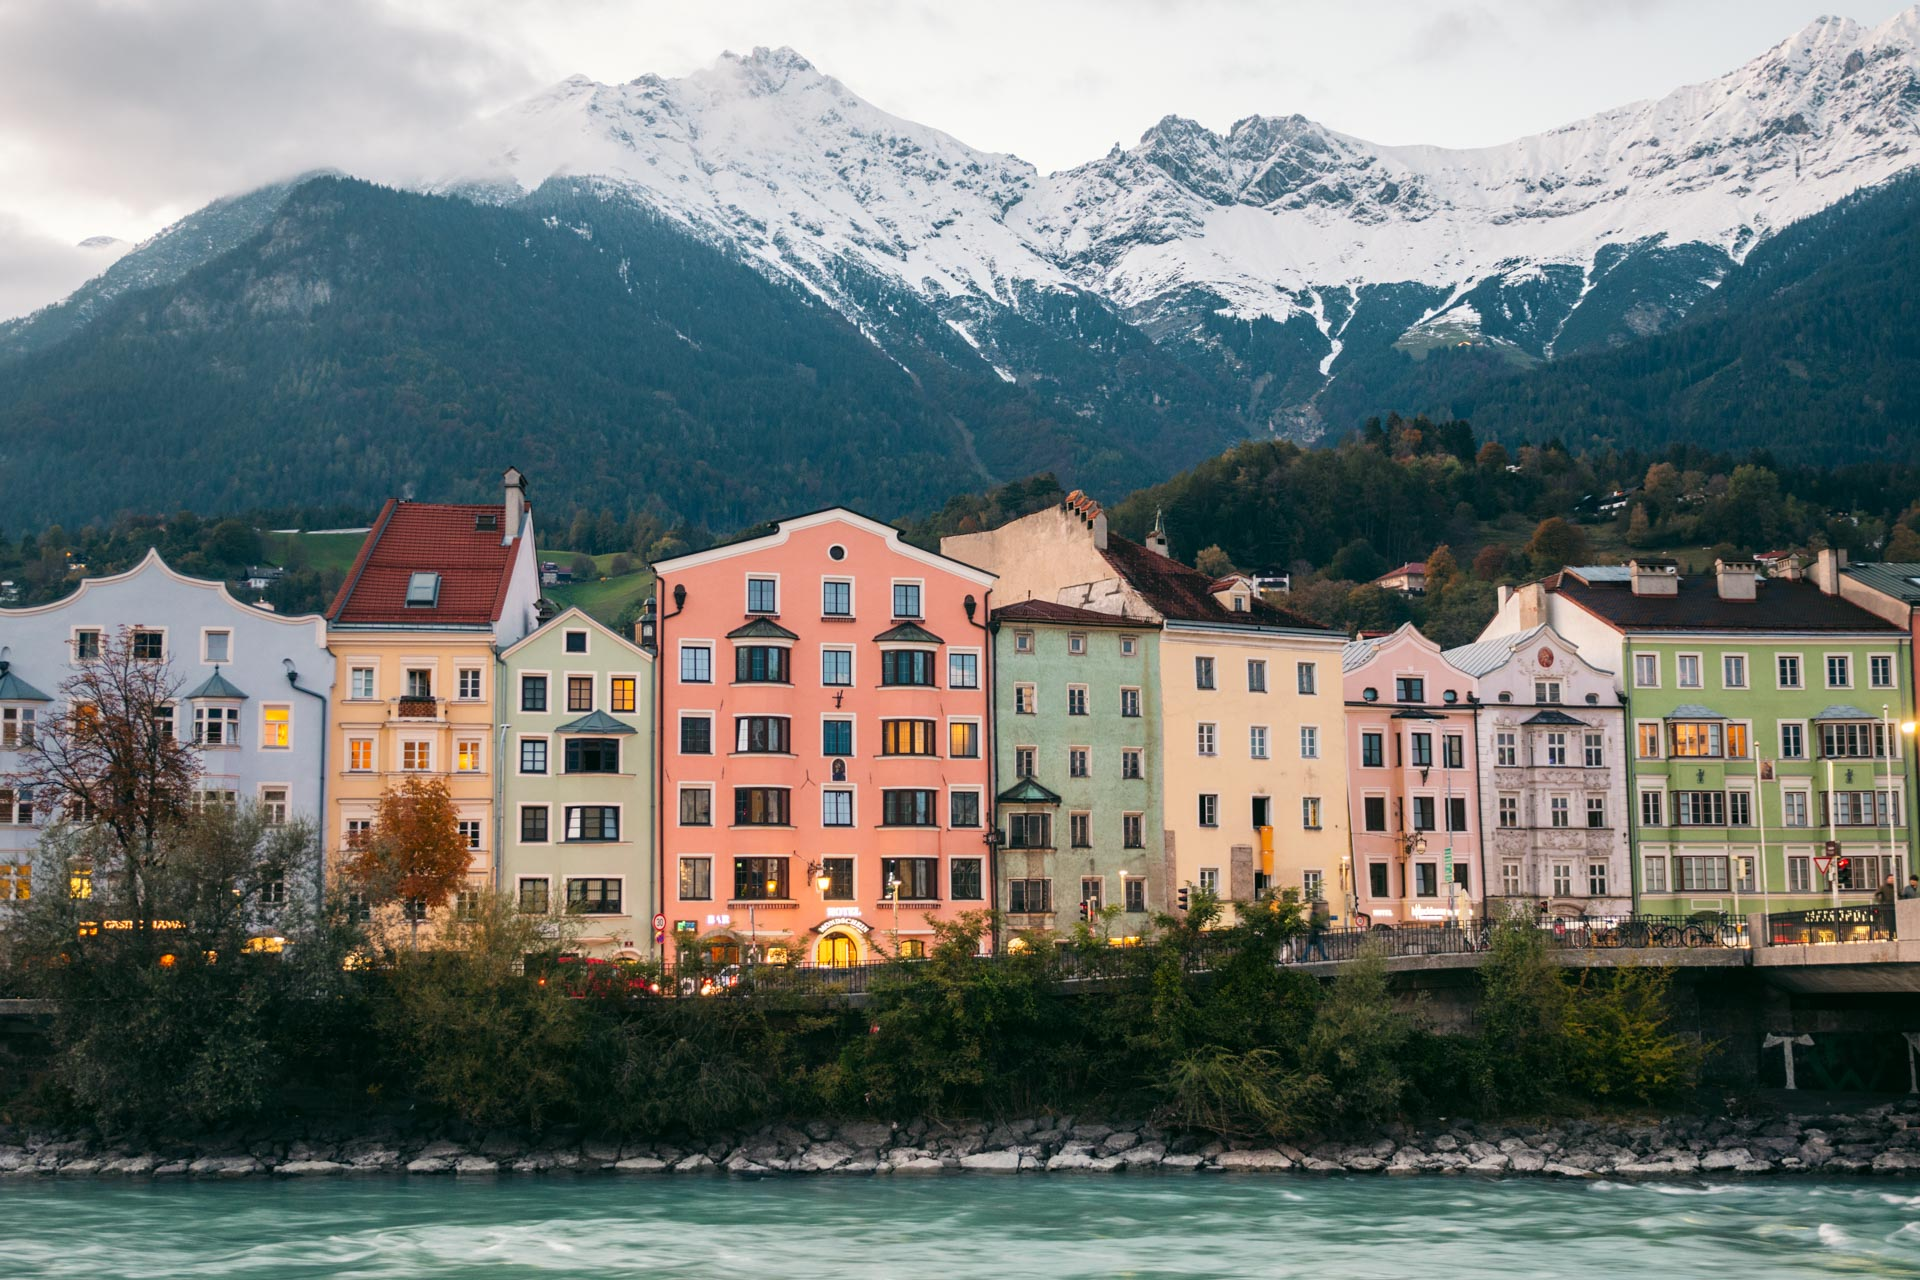 A Complete Travel Guide to Innsbruck, Austria: 12 Best Things to Do in the Charming Old City